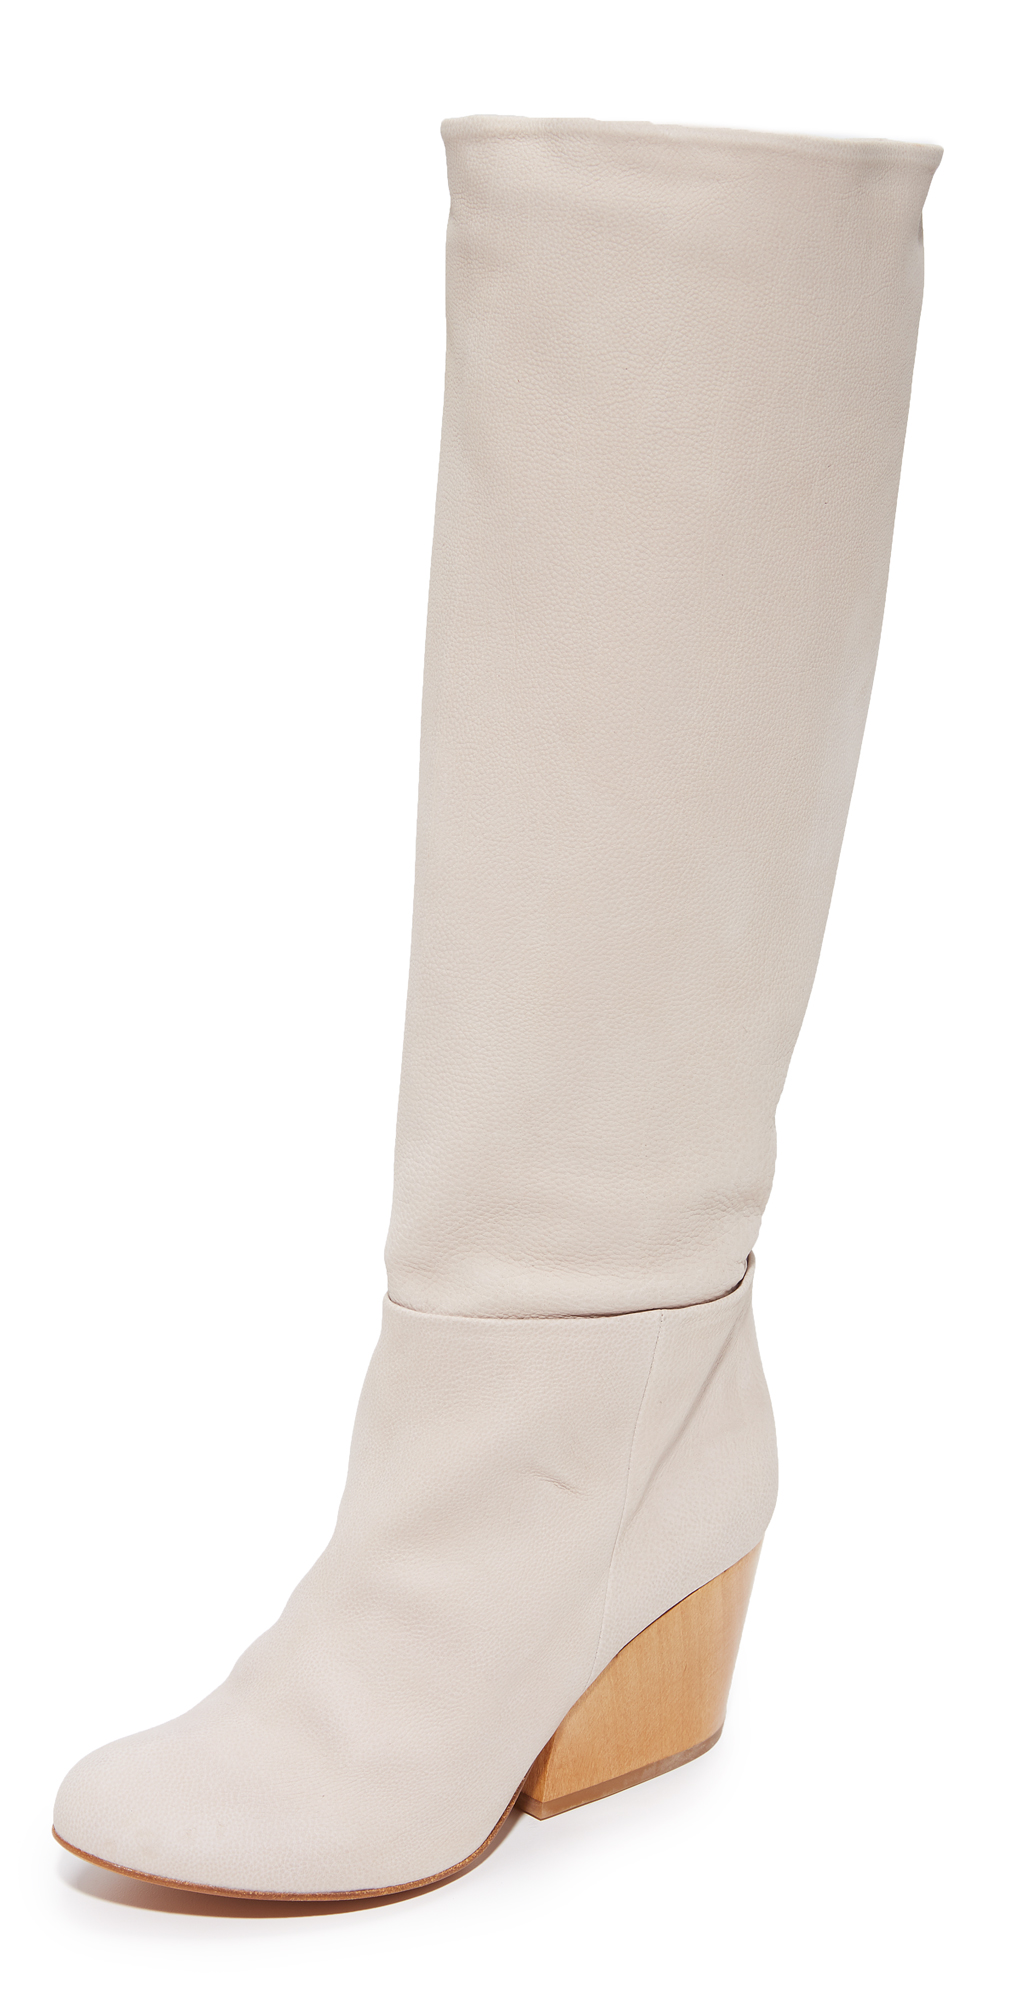 Bly Knee High Boots Coclico Shoes